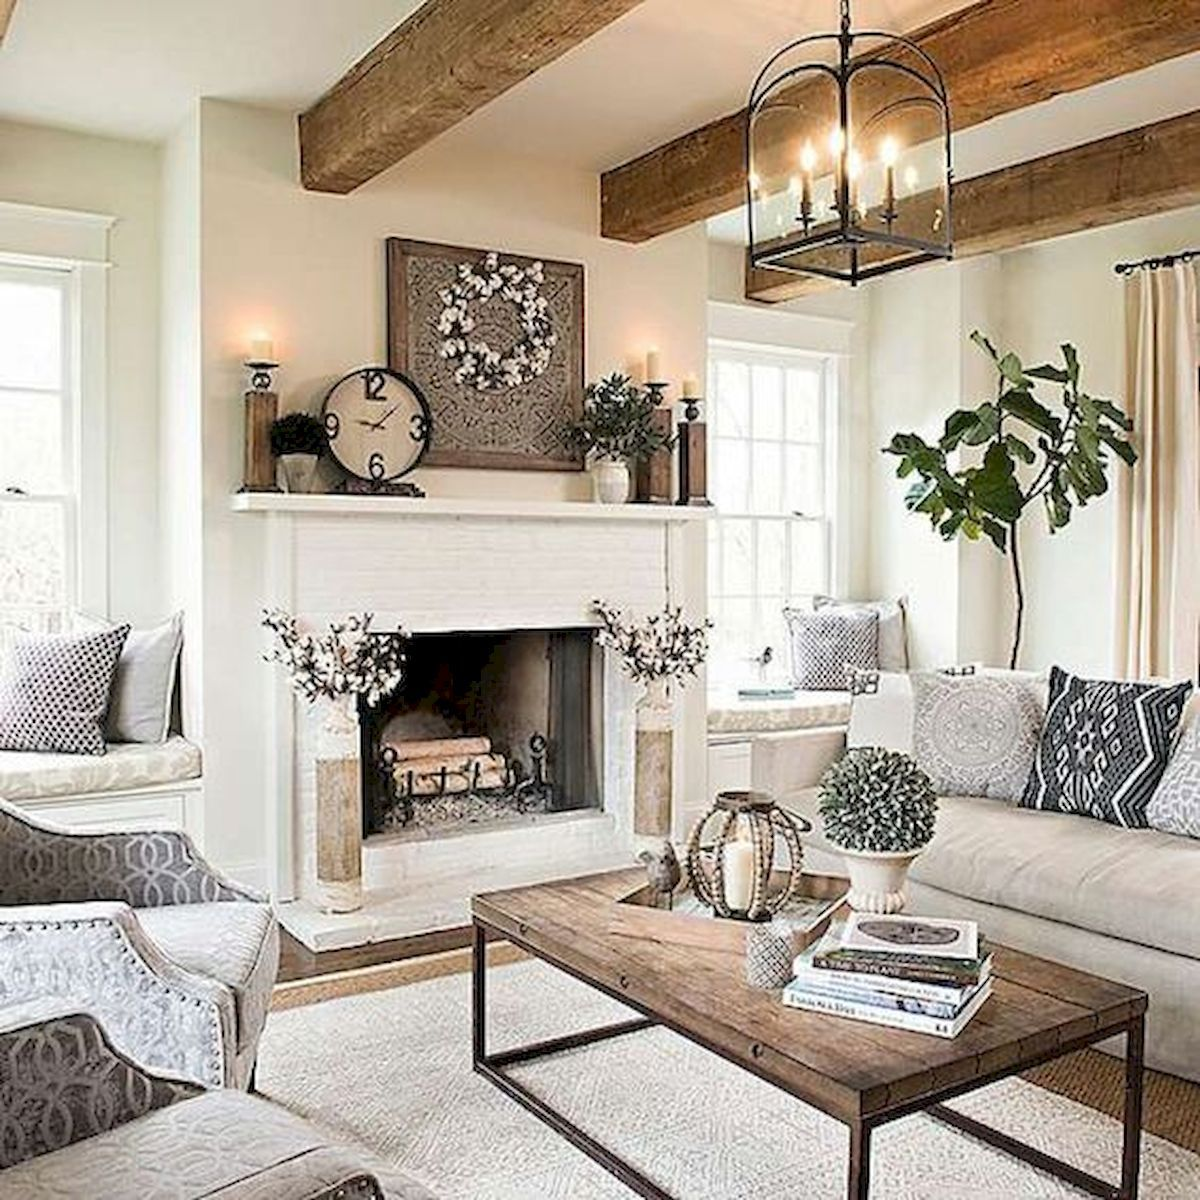 Adorable 30 Stunning Farmhouse Living Room Decor Ideas Https Coach Modern Farmhouse Living Room Decor Farmhouse Decor Living Room Farmhouse Style Living Room